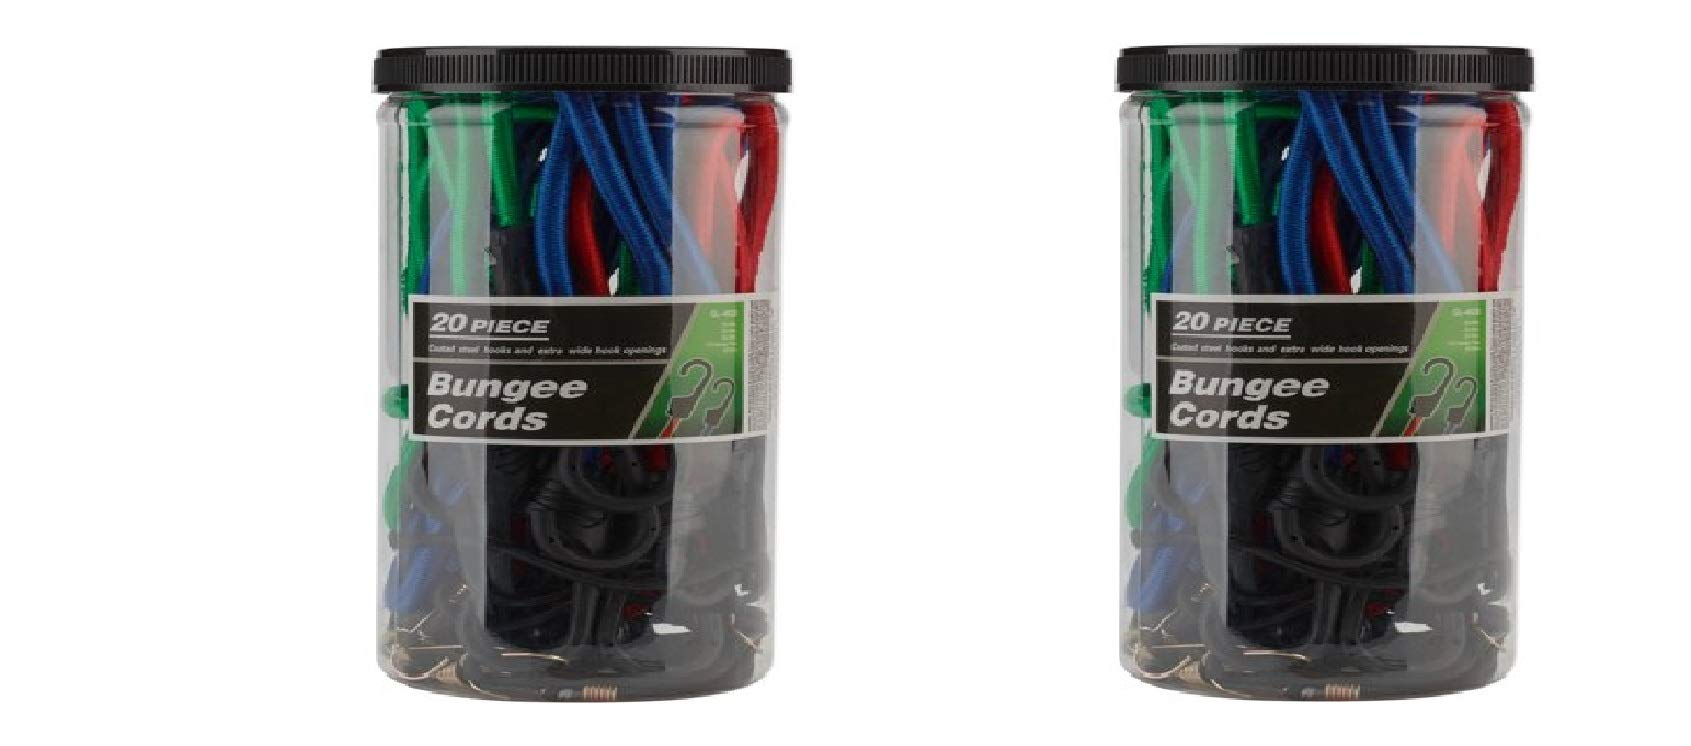 Pack of 2 - Bungee Cord Set, 20pc/Pack - Great For Hooking Items Together Or Field Work, Made Of Rubber, PP And Steel